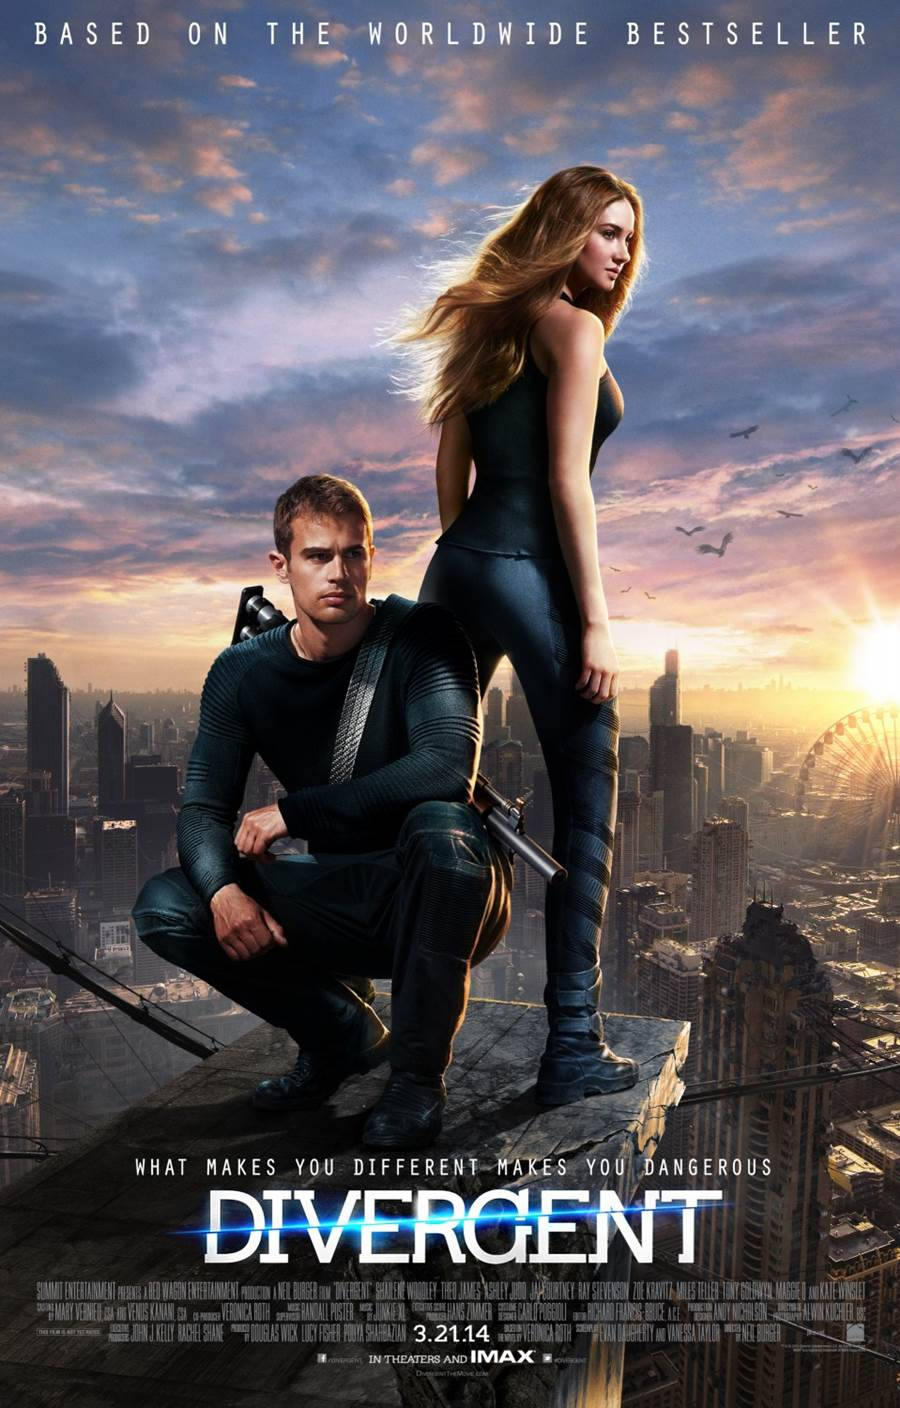 Divergent Movie Posters And Trailer